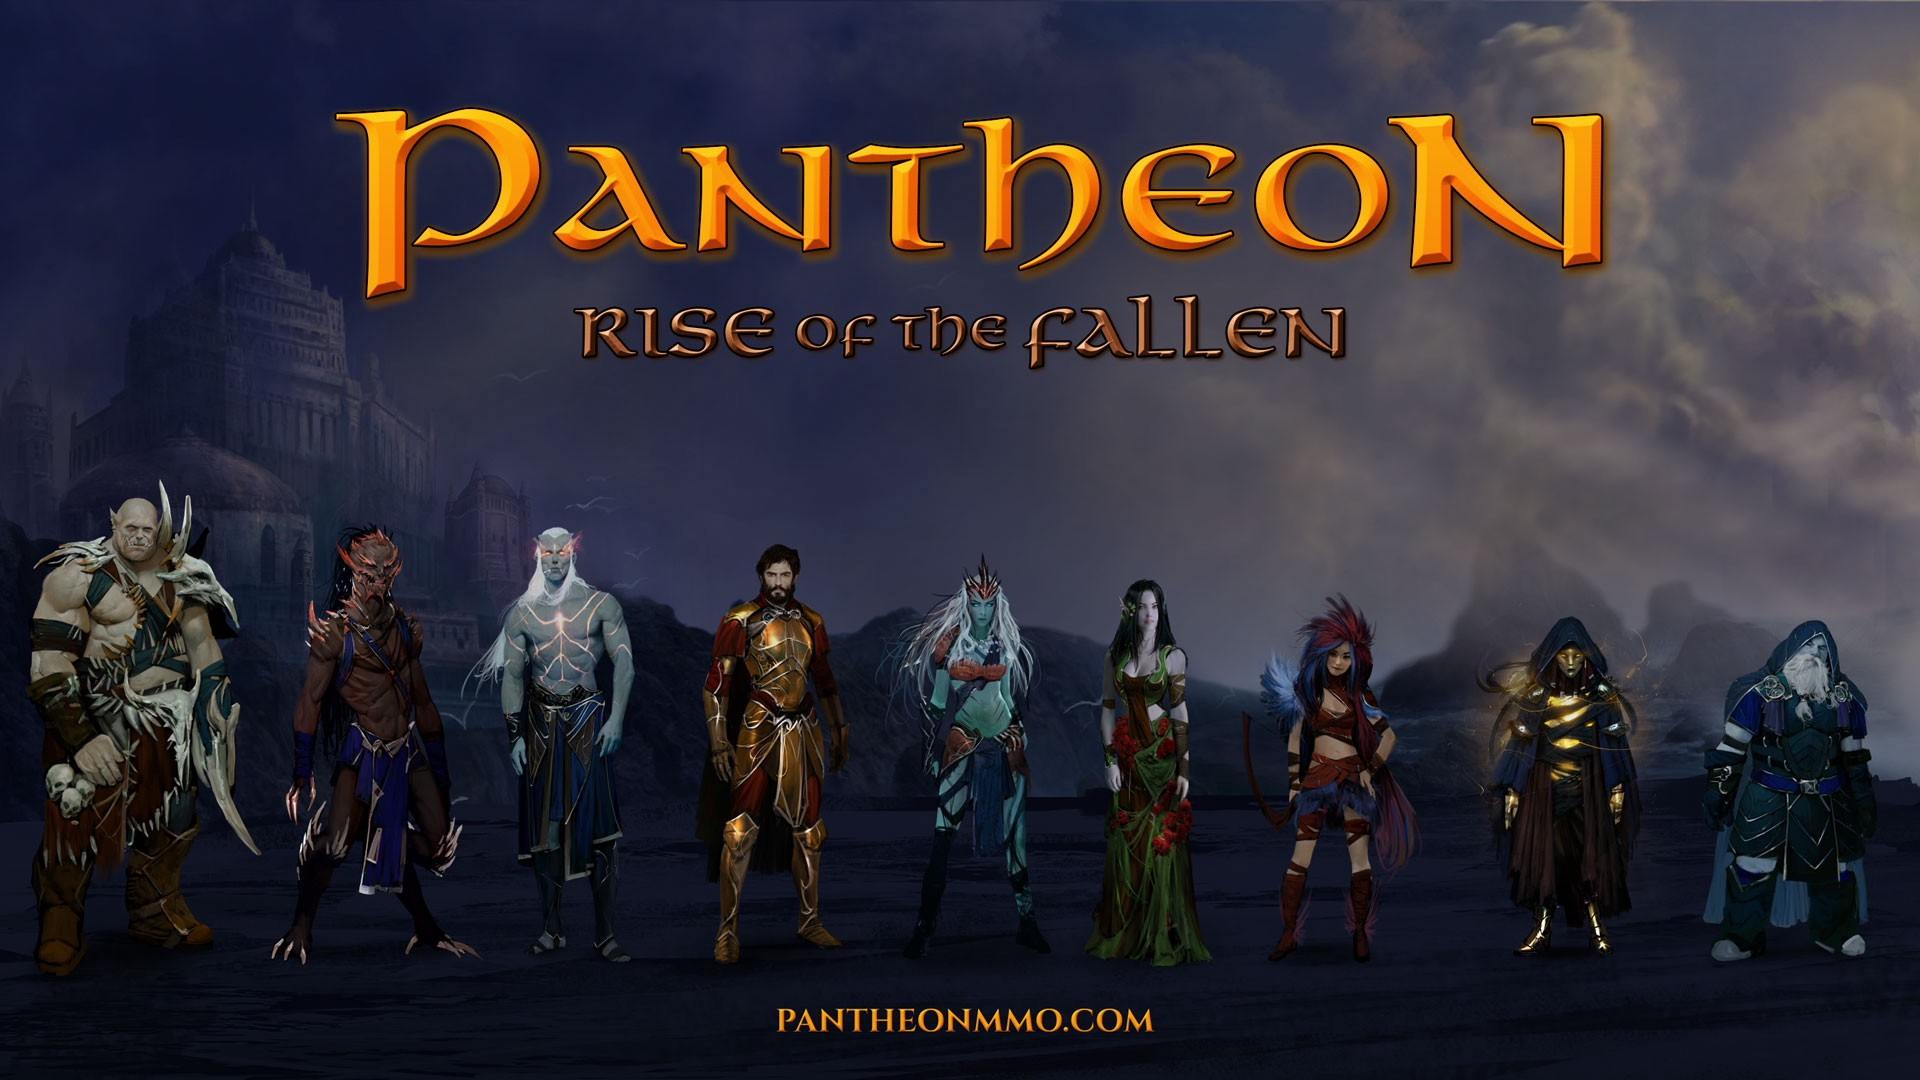 Why I'm Supporting Pantheon: Rise of the Fallen - Jeremy